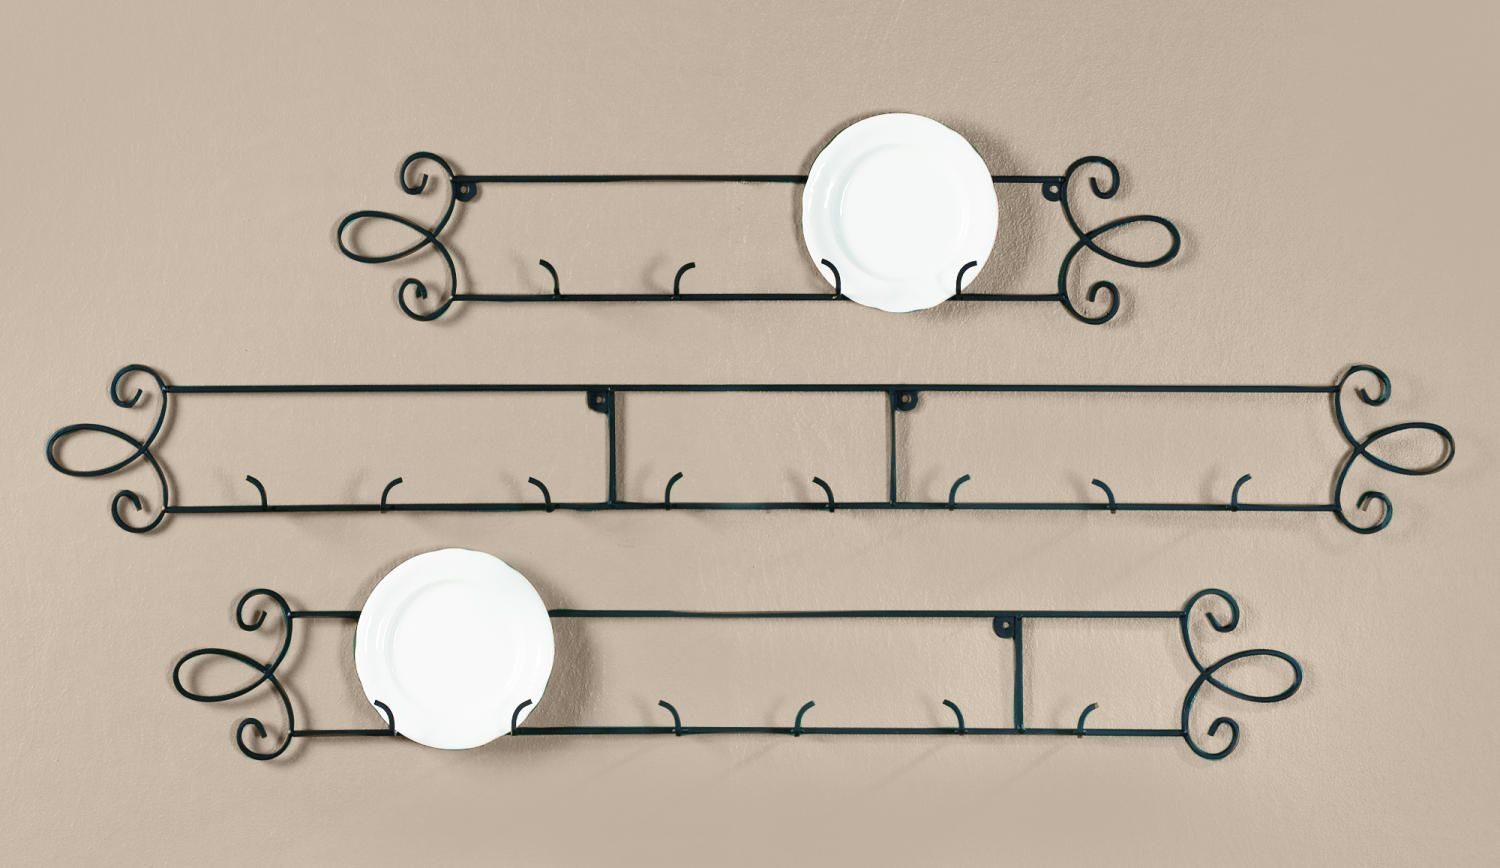 Plate Racks Spaces And Places Plate Racks Plates